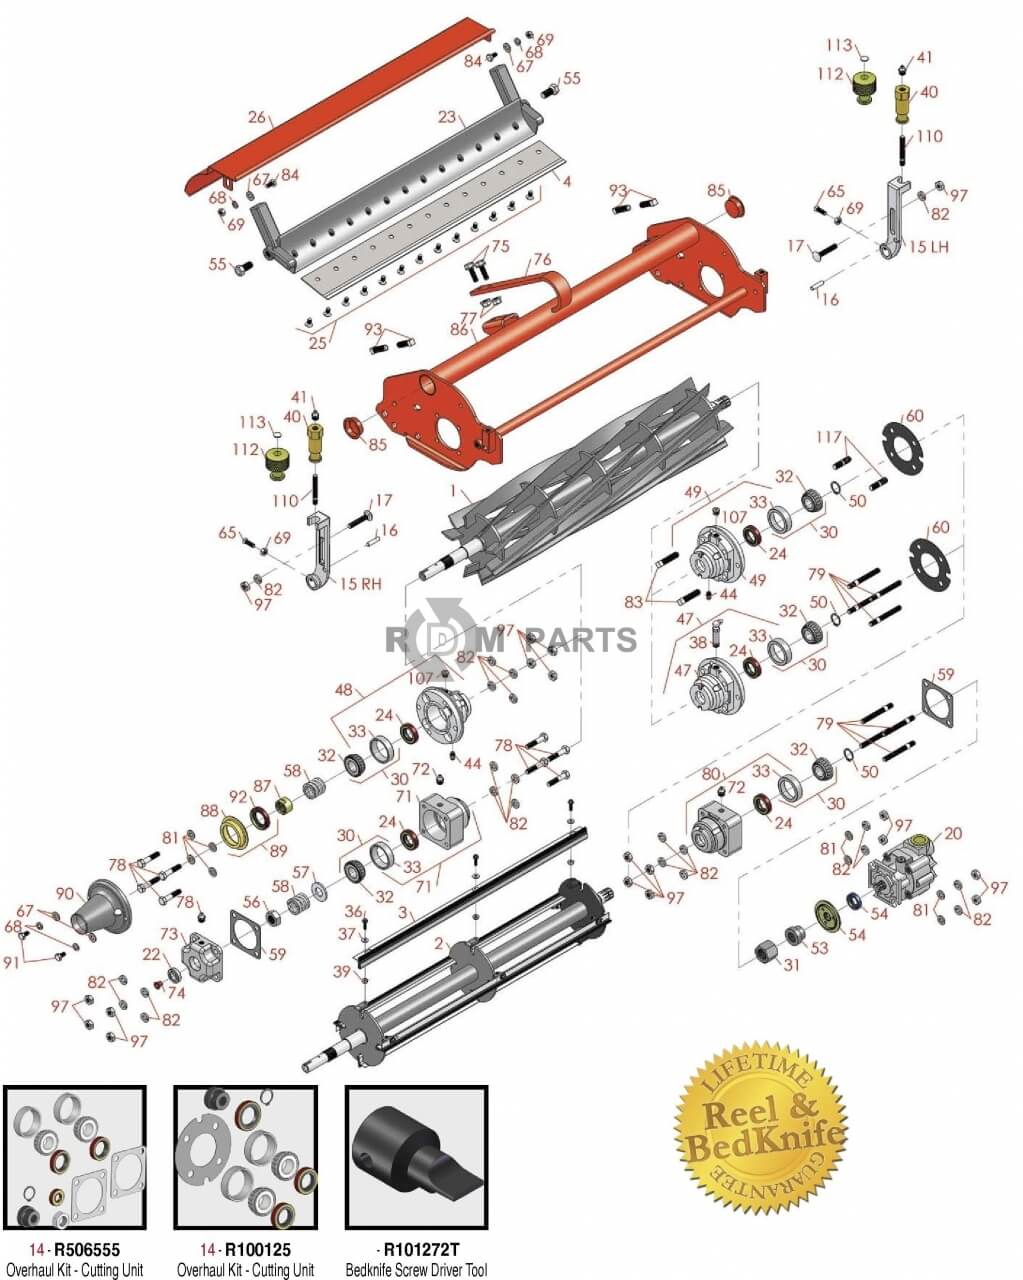 Jackson electric guitar wiring diagram wiring diagram and schematics 5 wires photos simple wiring jackson soloist wiring diagram free download wiring diagrams asfbconference2016 Image collections